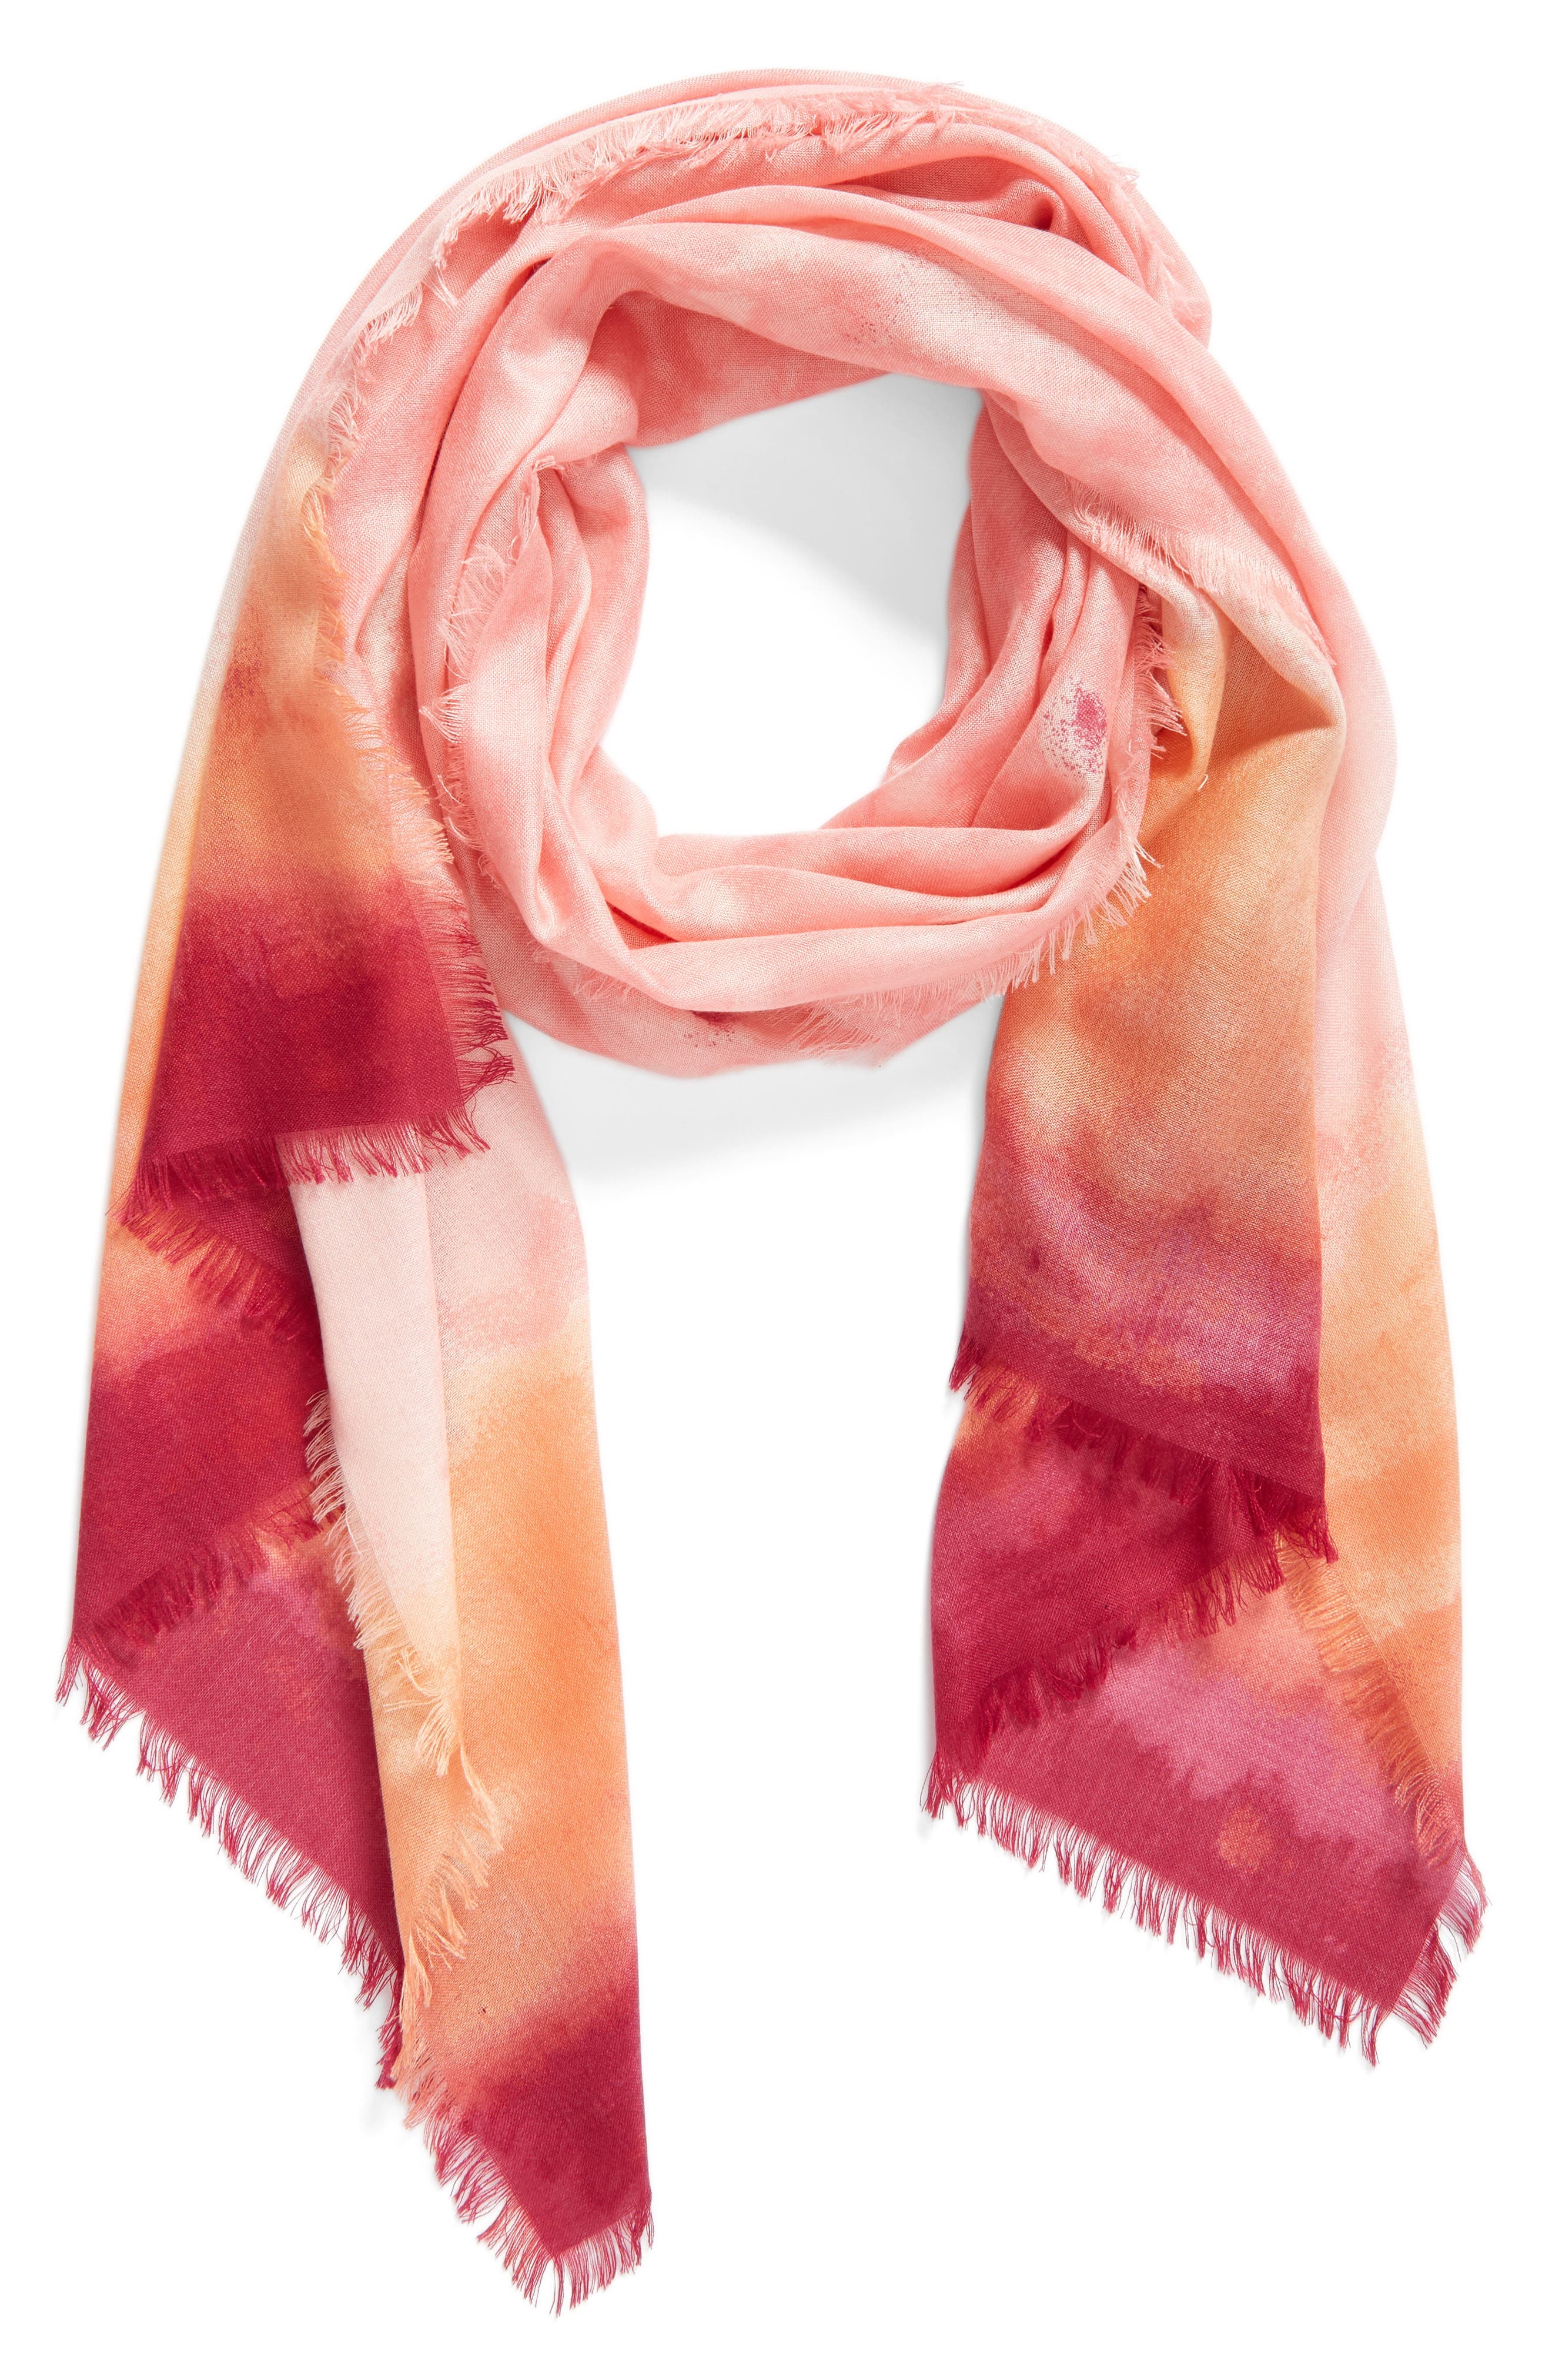 Alternate Image 1 Selected - Nordstrom Saharan Colorwash Cashmere & Silk Scarf